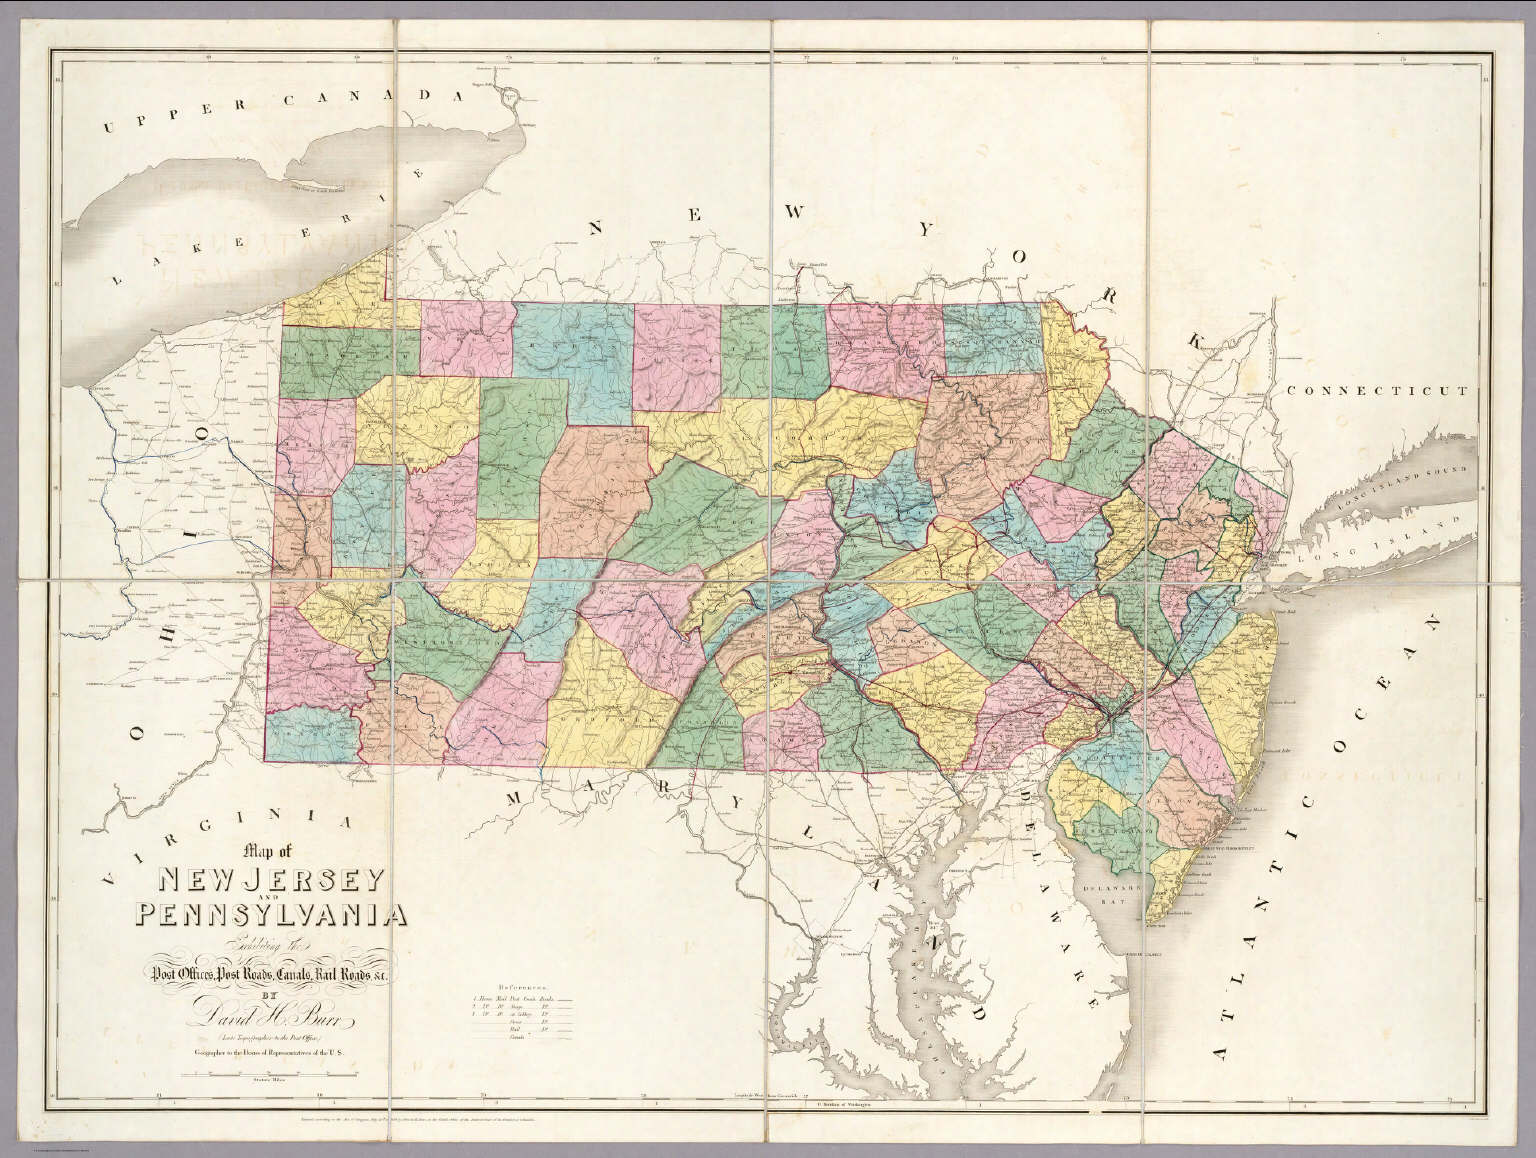 New Jersey Pennsylvania Map